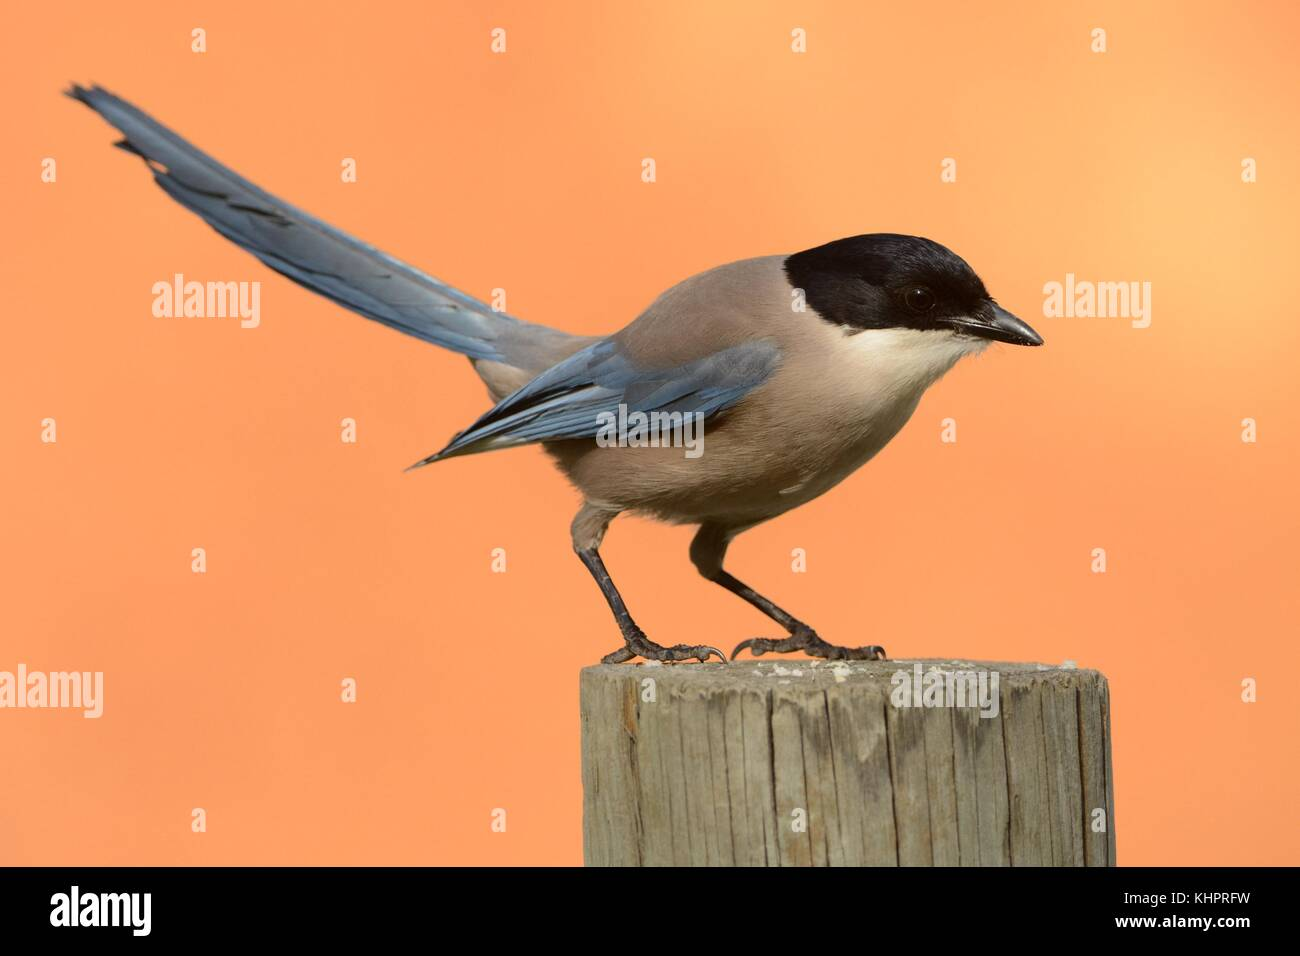 Azure-winged Magpie (Cyanopica cyanus) perched on a pale with orange backround. - Stock Image